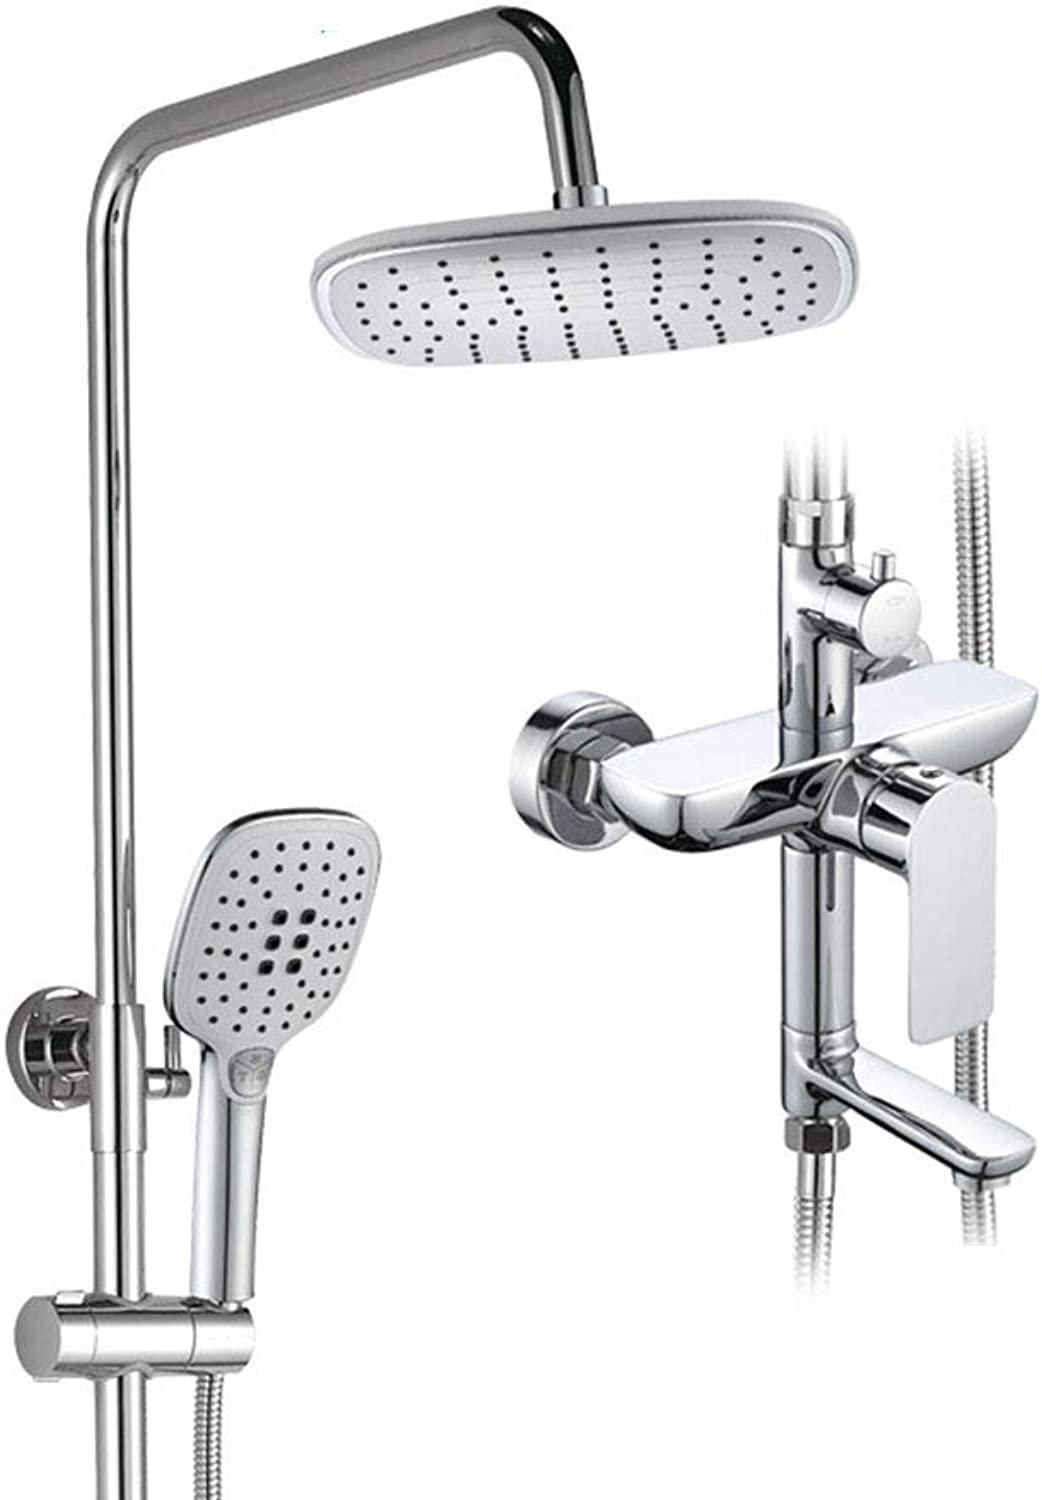 Shower Faucets Set Chrome Bath Bathtub Mixer Faucet Rainfall Shower Tap Bathroom Shower Head Wall Mounted Bathroom Mixer